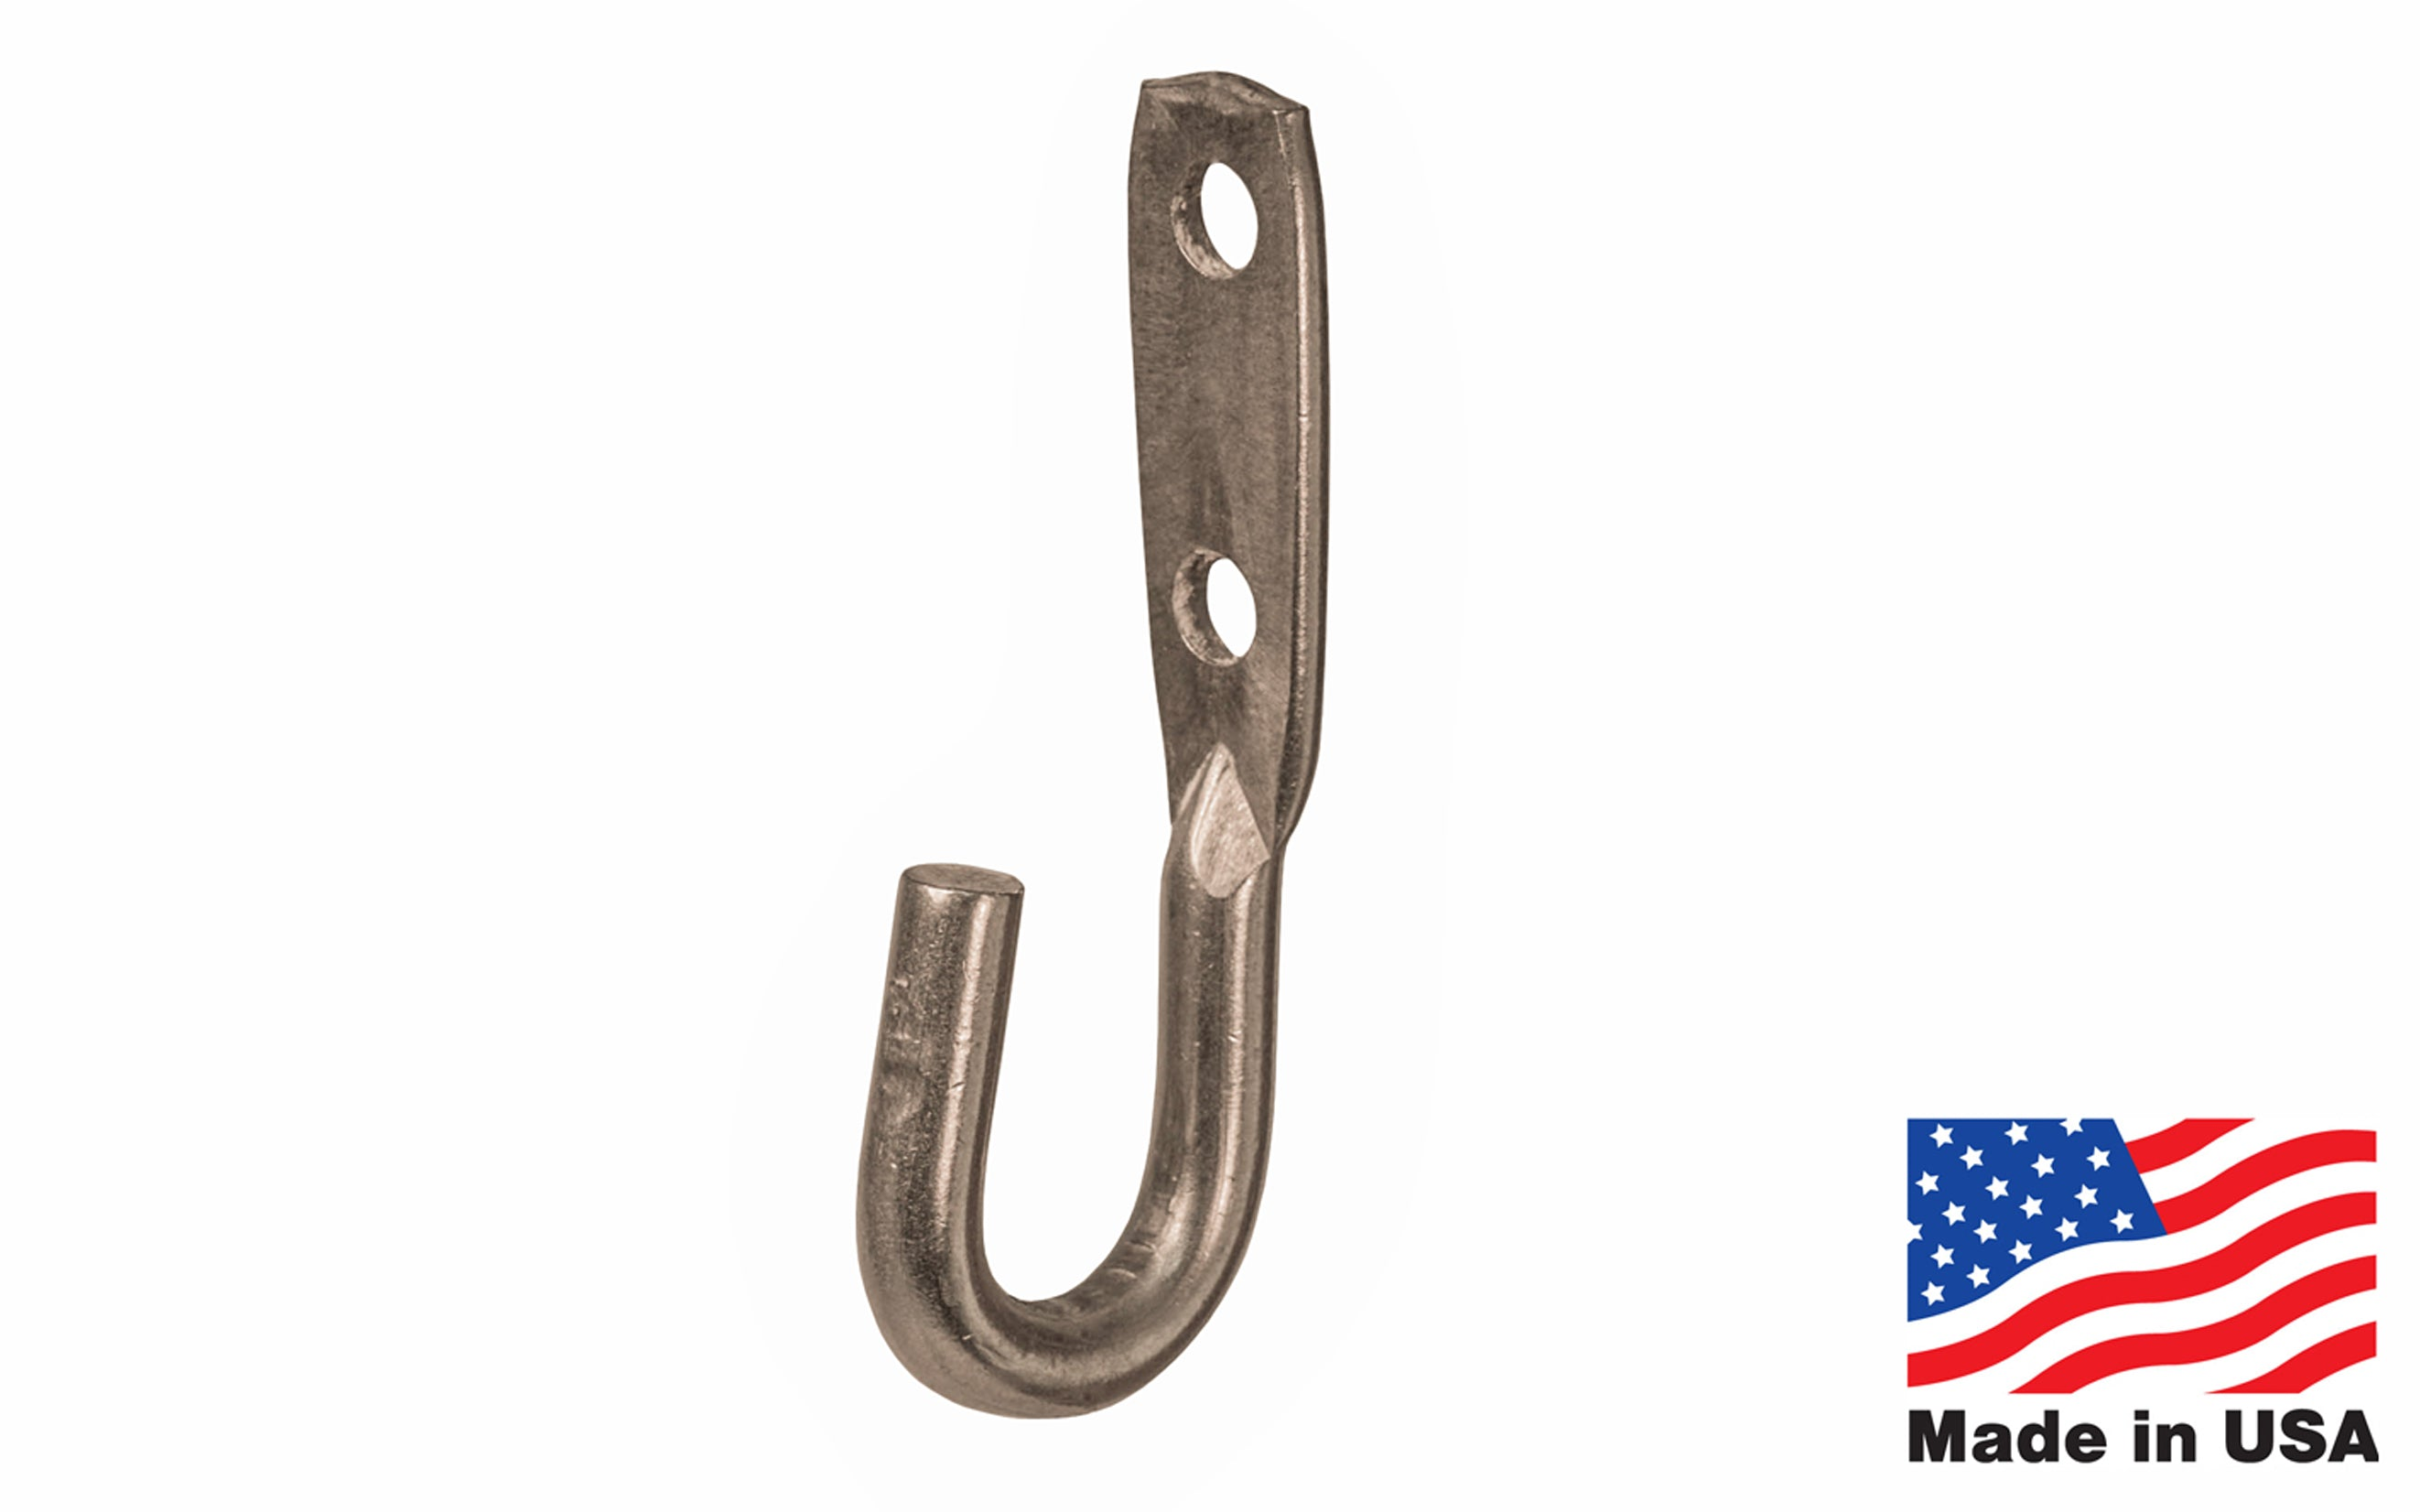 Stainless Steel Hook Pad / Hook Cleat - Made in USA